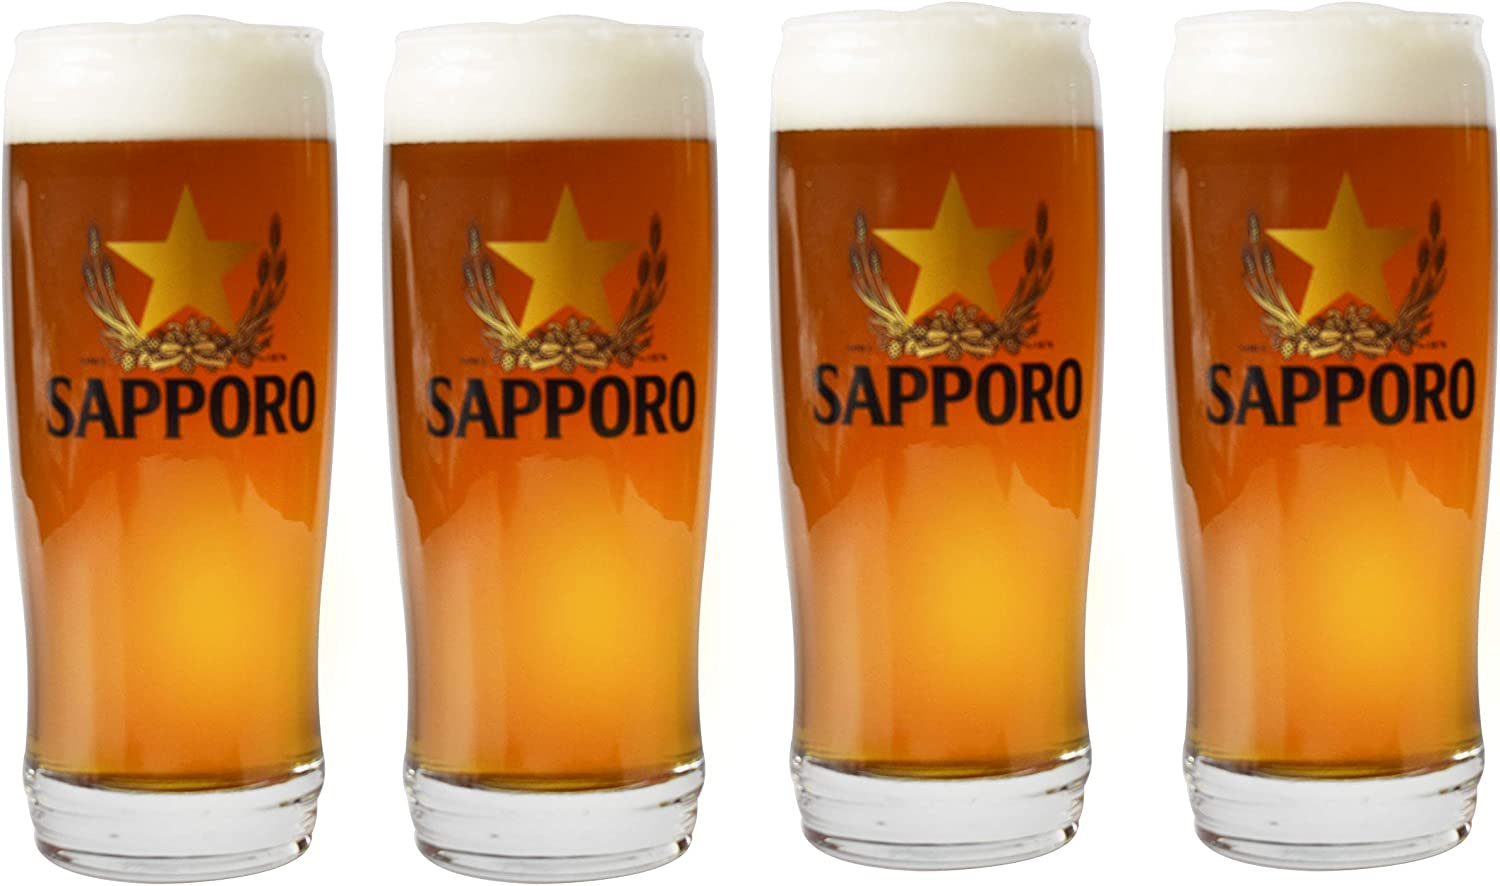 Sapporo Beer Glass 16oz set of 4